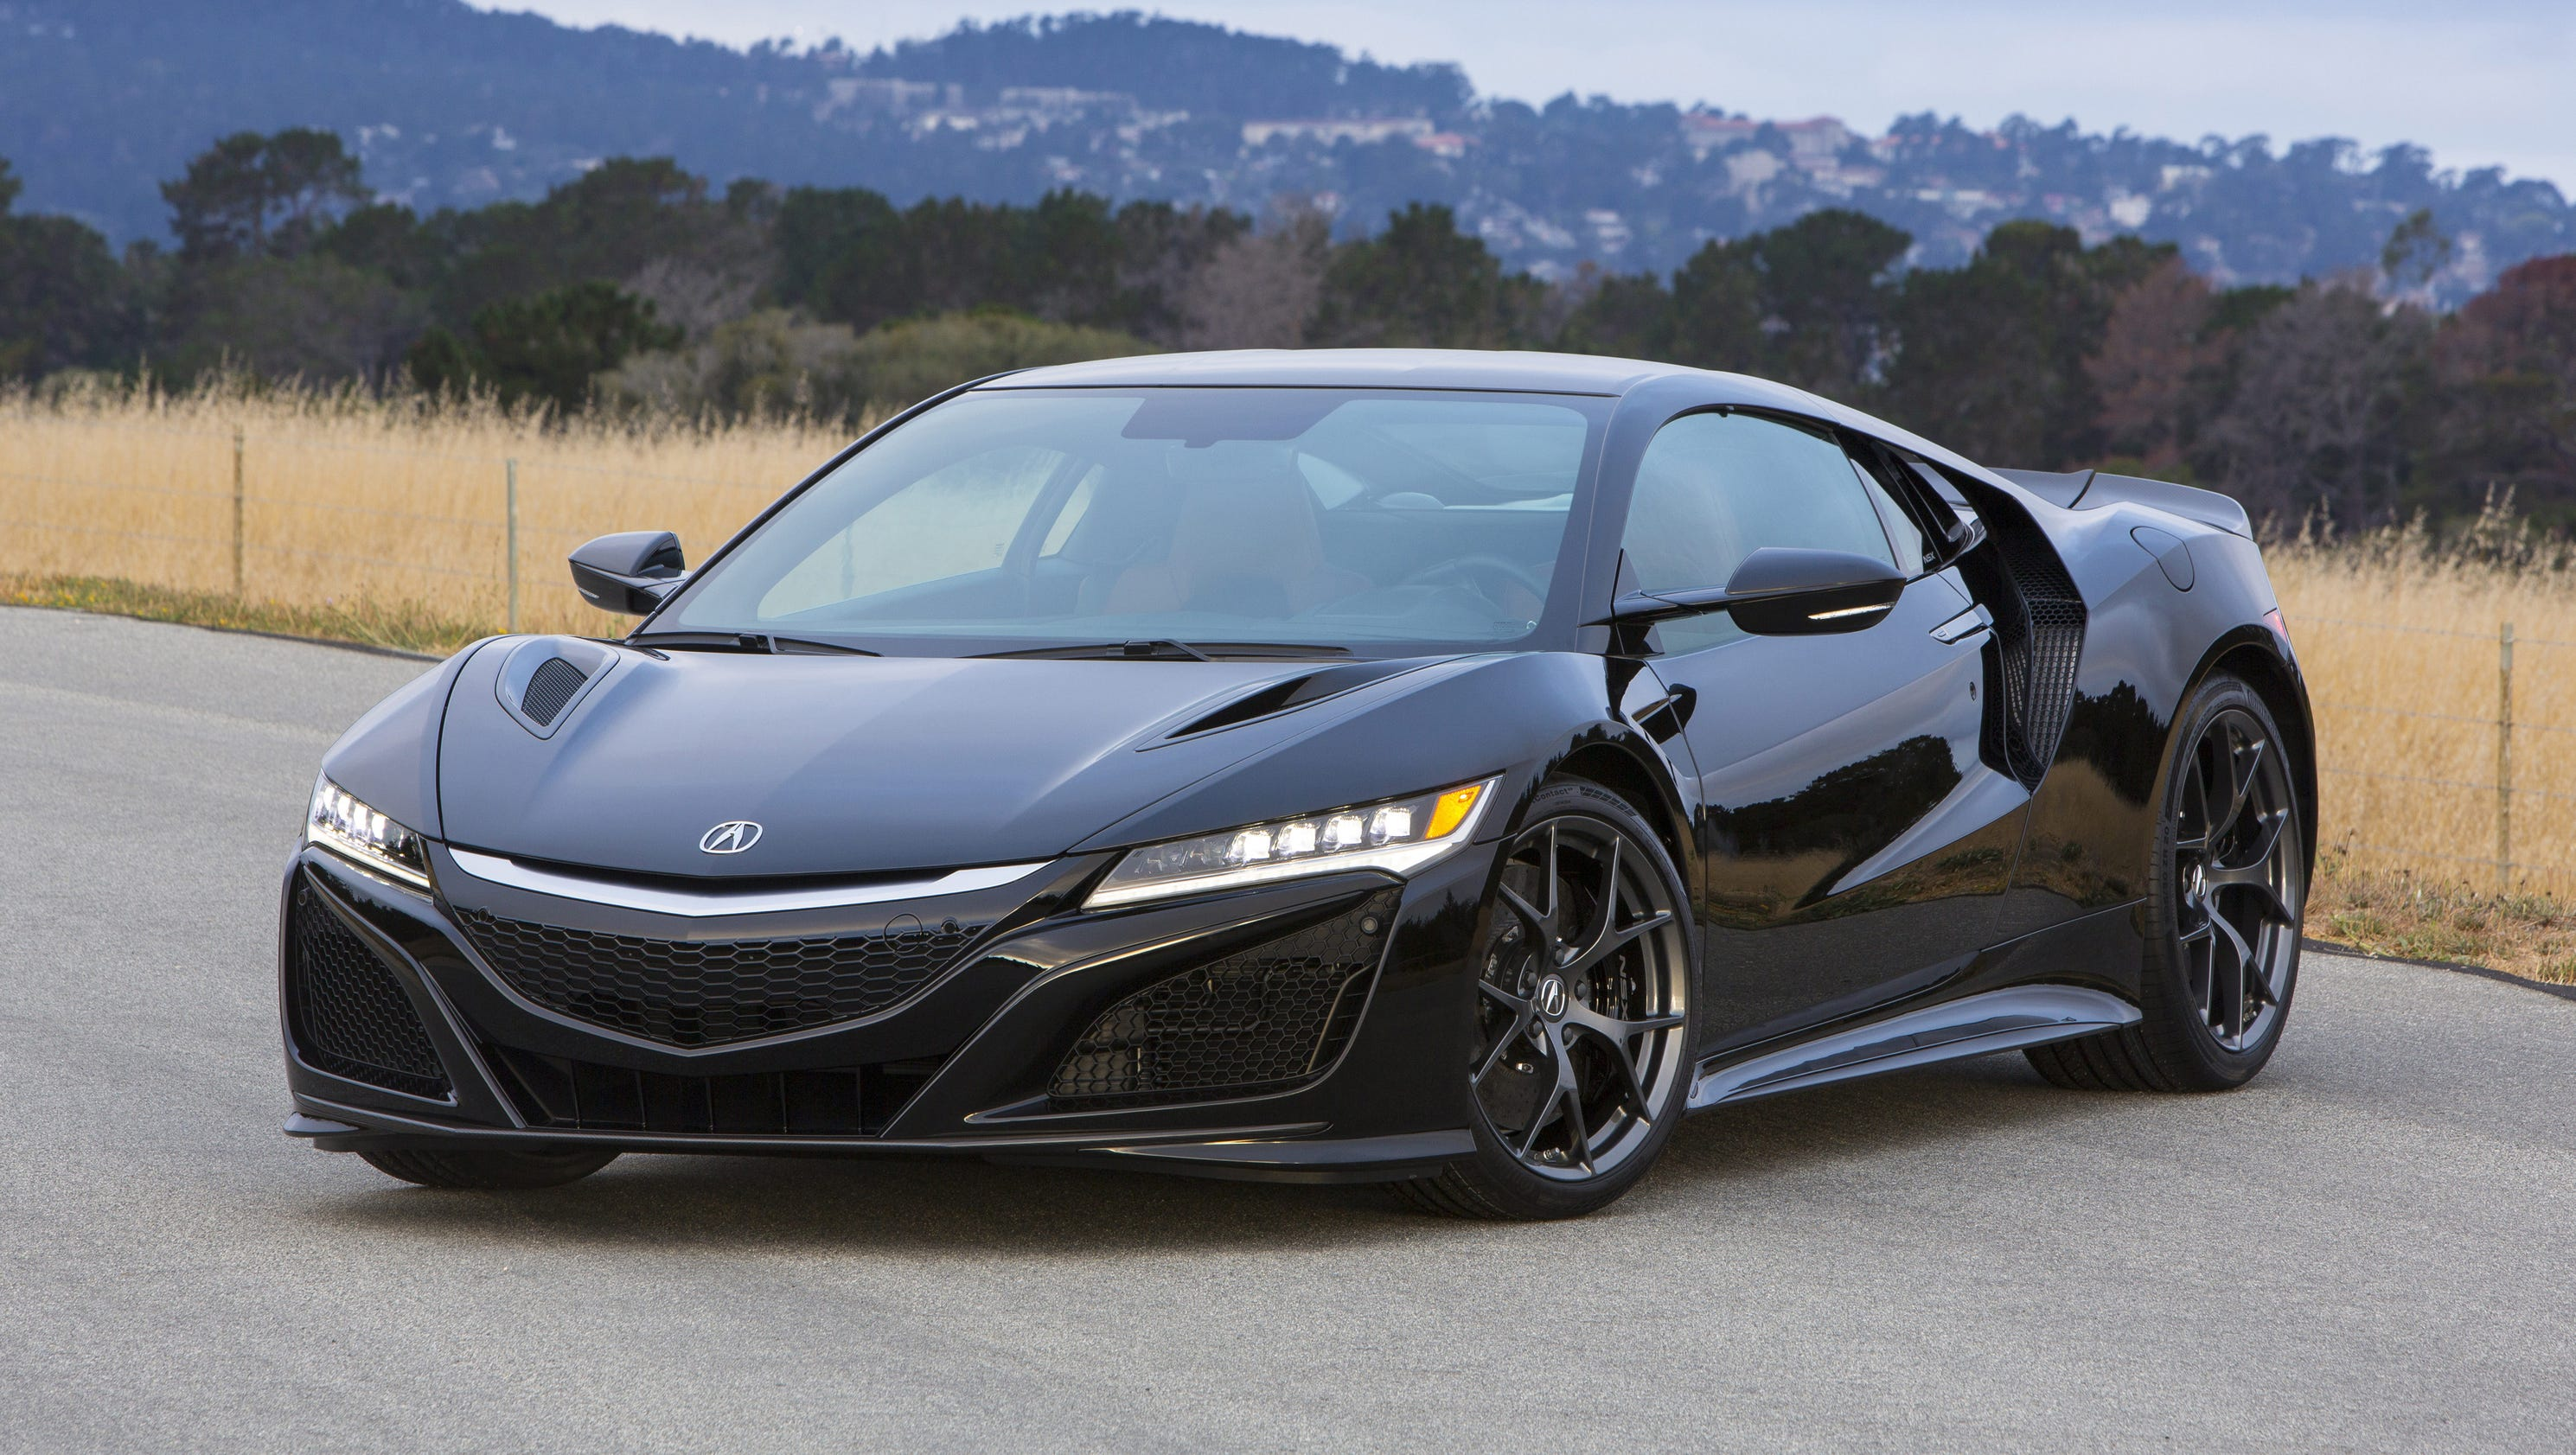 2016 Acura Nsx Sports Car | 2017 - 2018 Best Cars Reviews